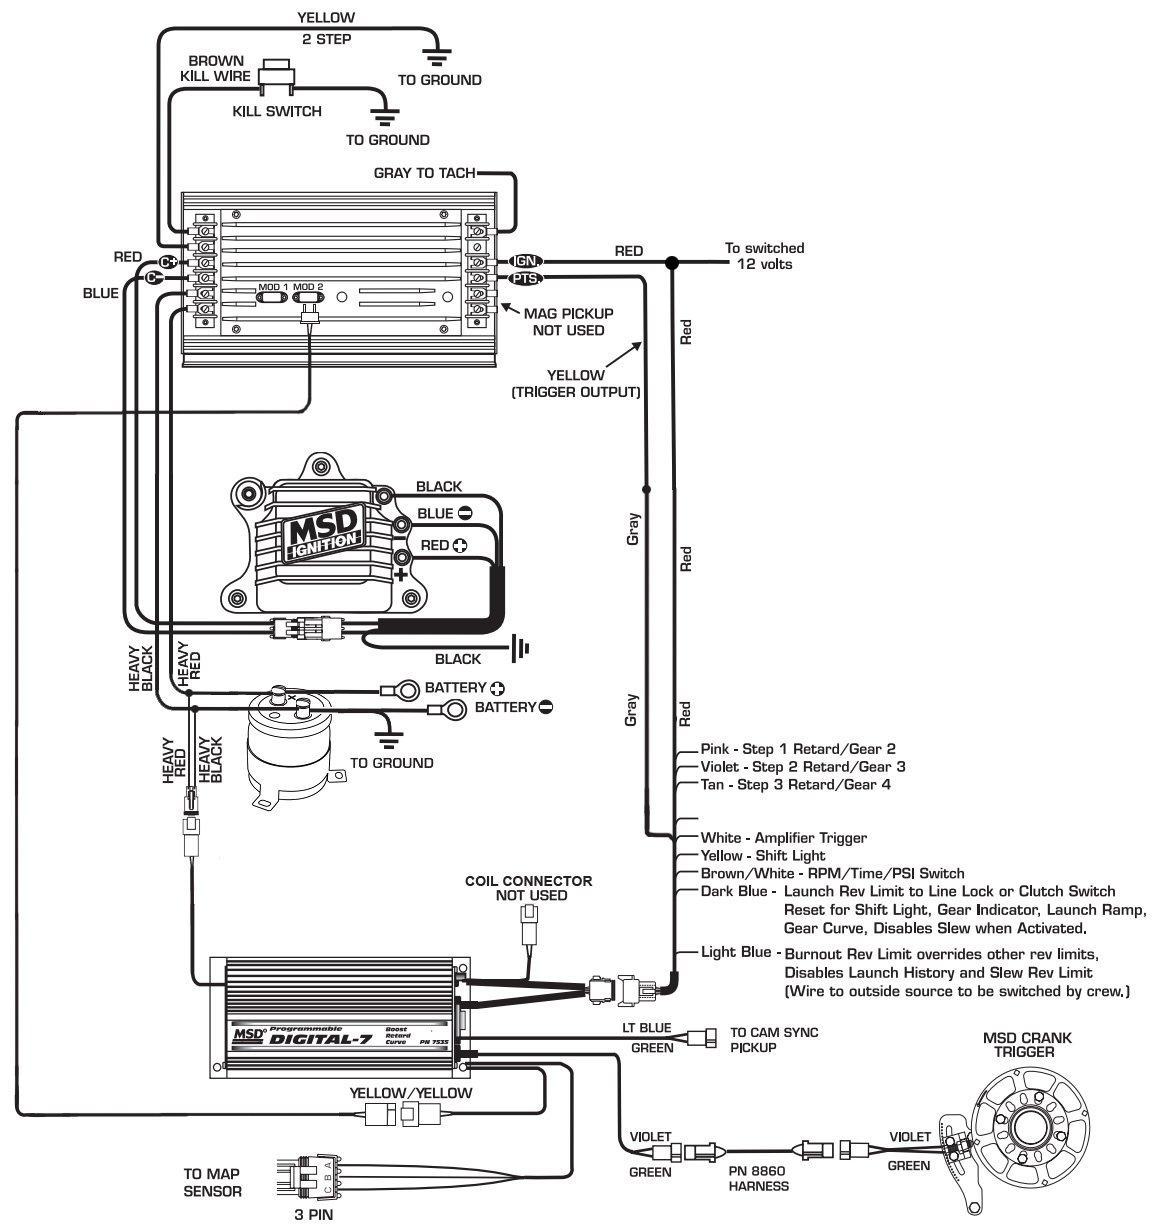 JA2k 13057 besides Ford 460 Starter Wiring Diagram further Ignition Hardware Manual additionally Pontiac Montana Wiring Diagram Free Picture Html additionally Ford Starter Solenoid Wiring Diagram Car Images. on msd ignition wiring diagram with relay